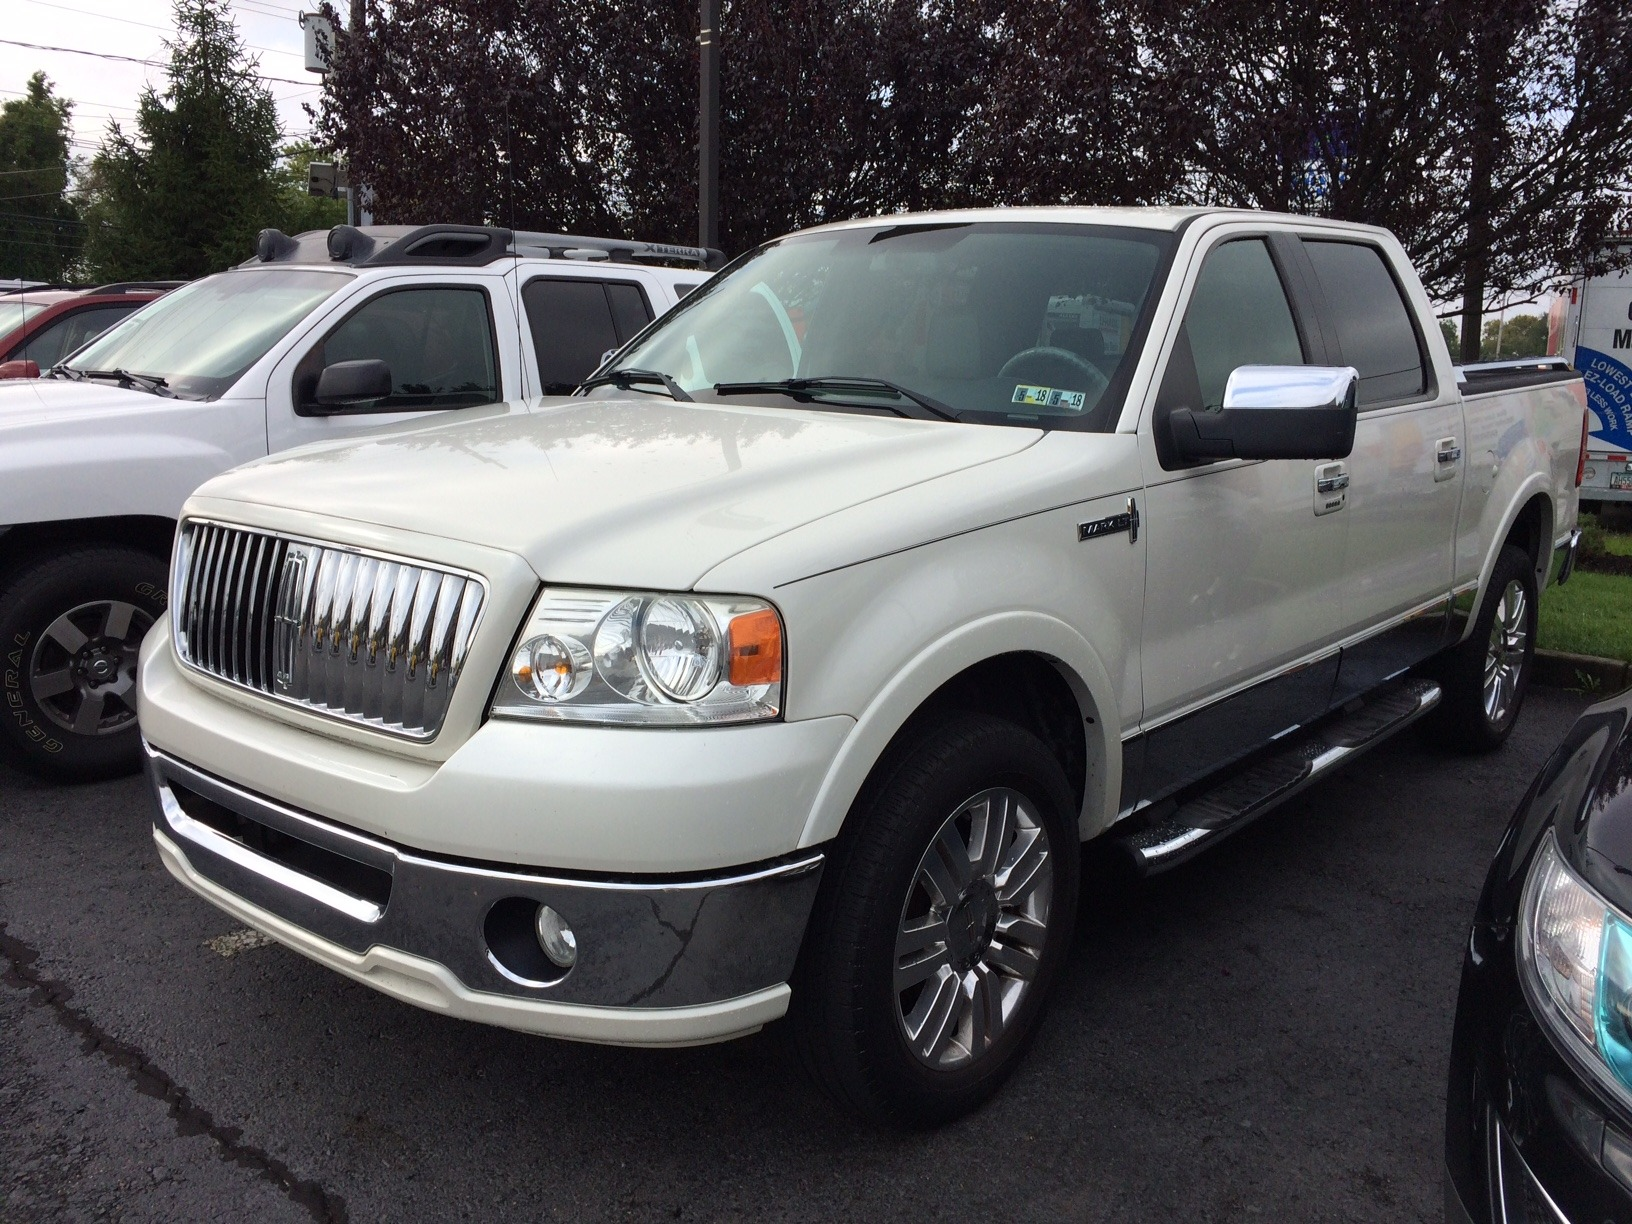 https://www.jonathanmotorcars.com/imagetag/128/2/l/Used-2006-Lincoln-Mark-LT.jpg